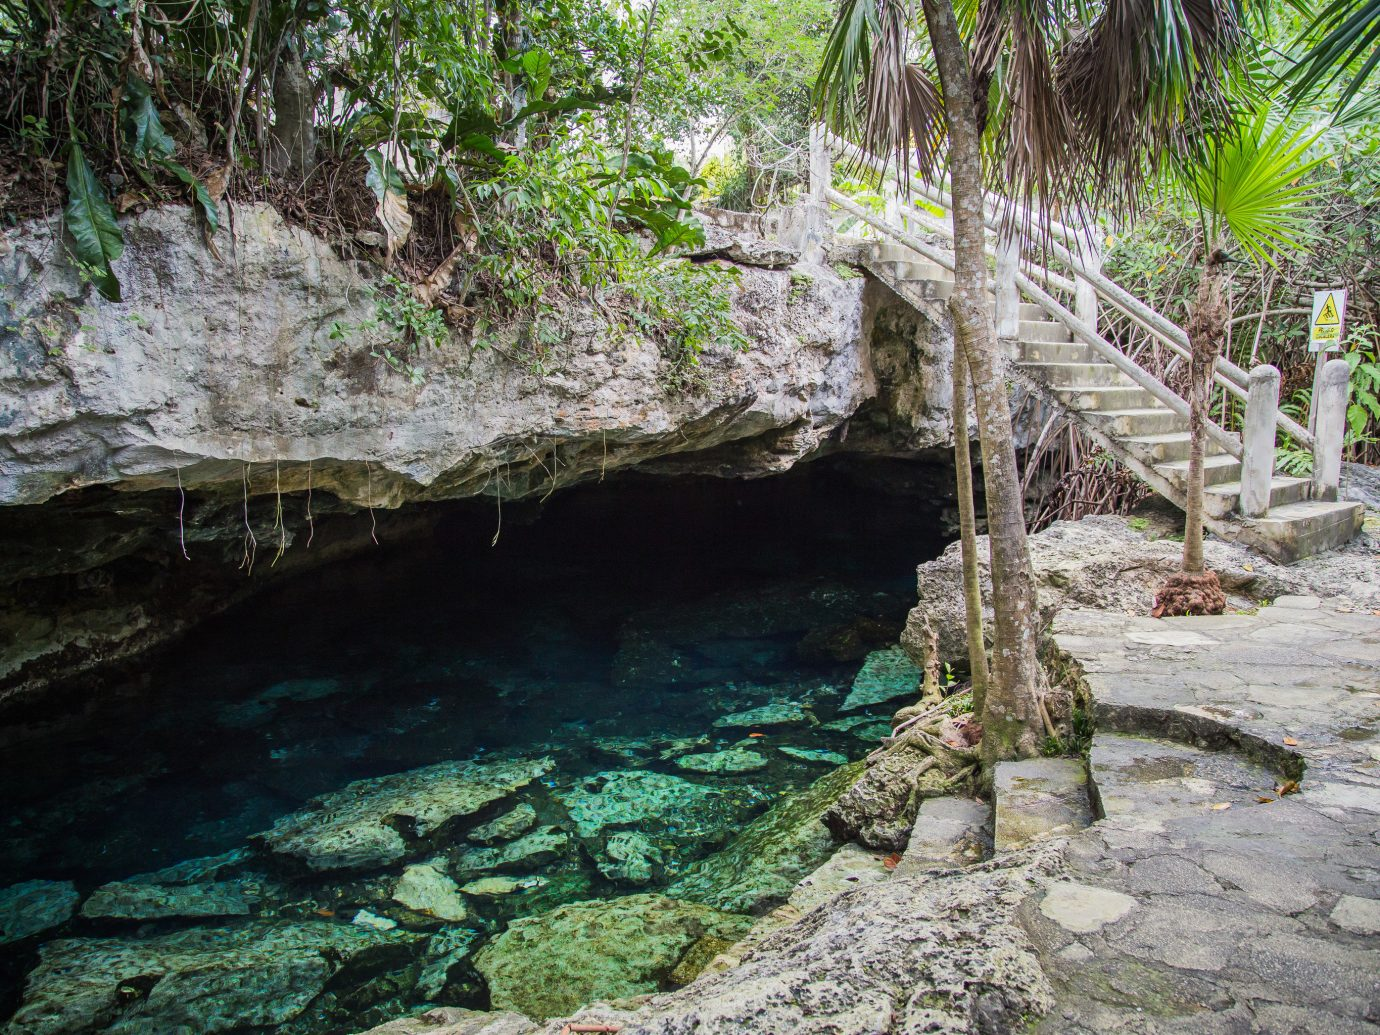 City Mexico Trip Ideas Tulum tree outdoor ground body of water water nature reserve rock water resources Nature watercourse stream landscape plant water feature mineral spring pond Jungle formation creek area stone dirt